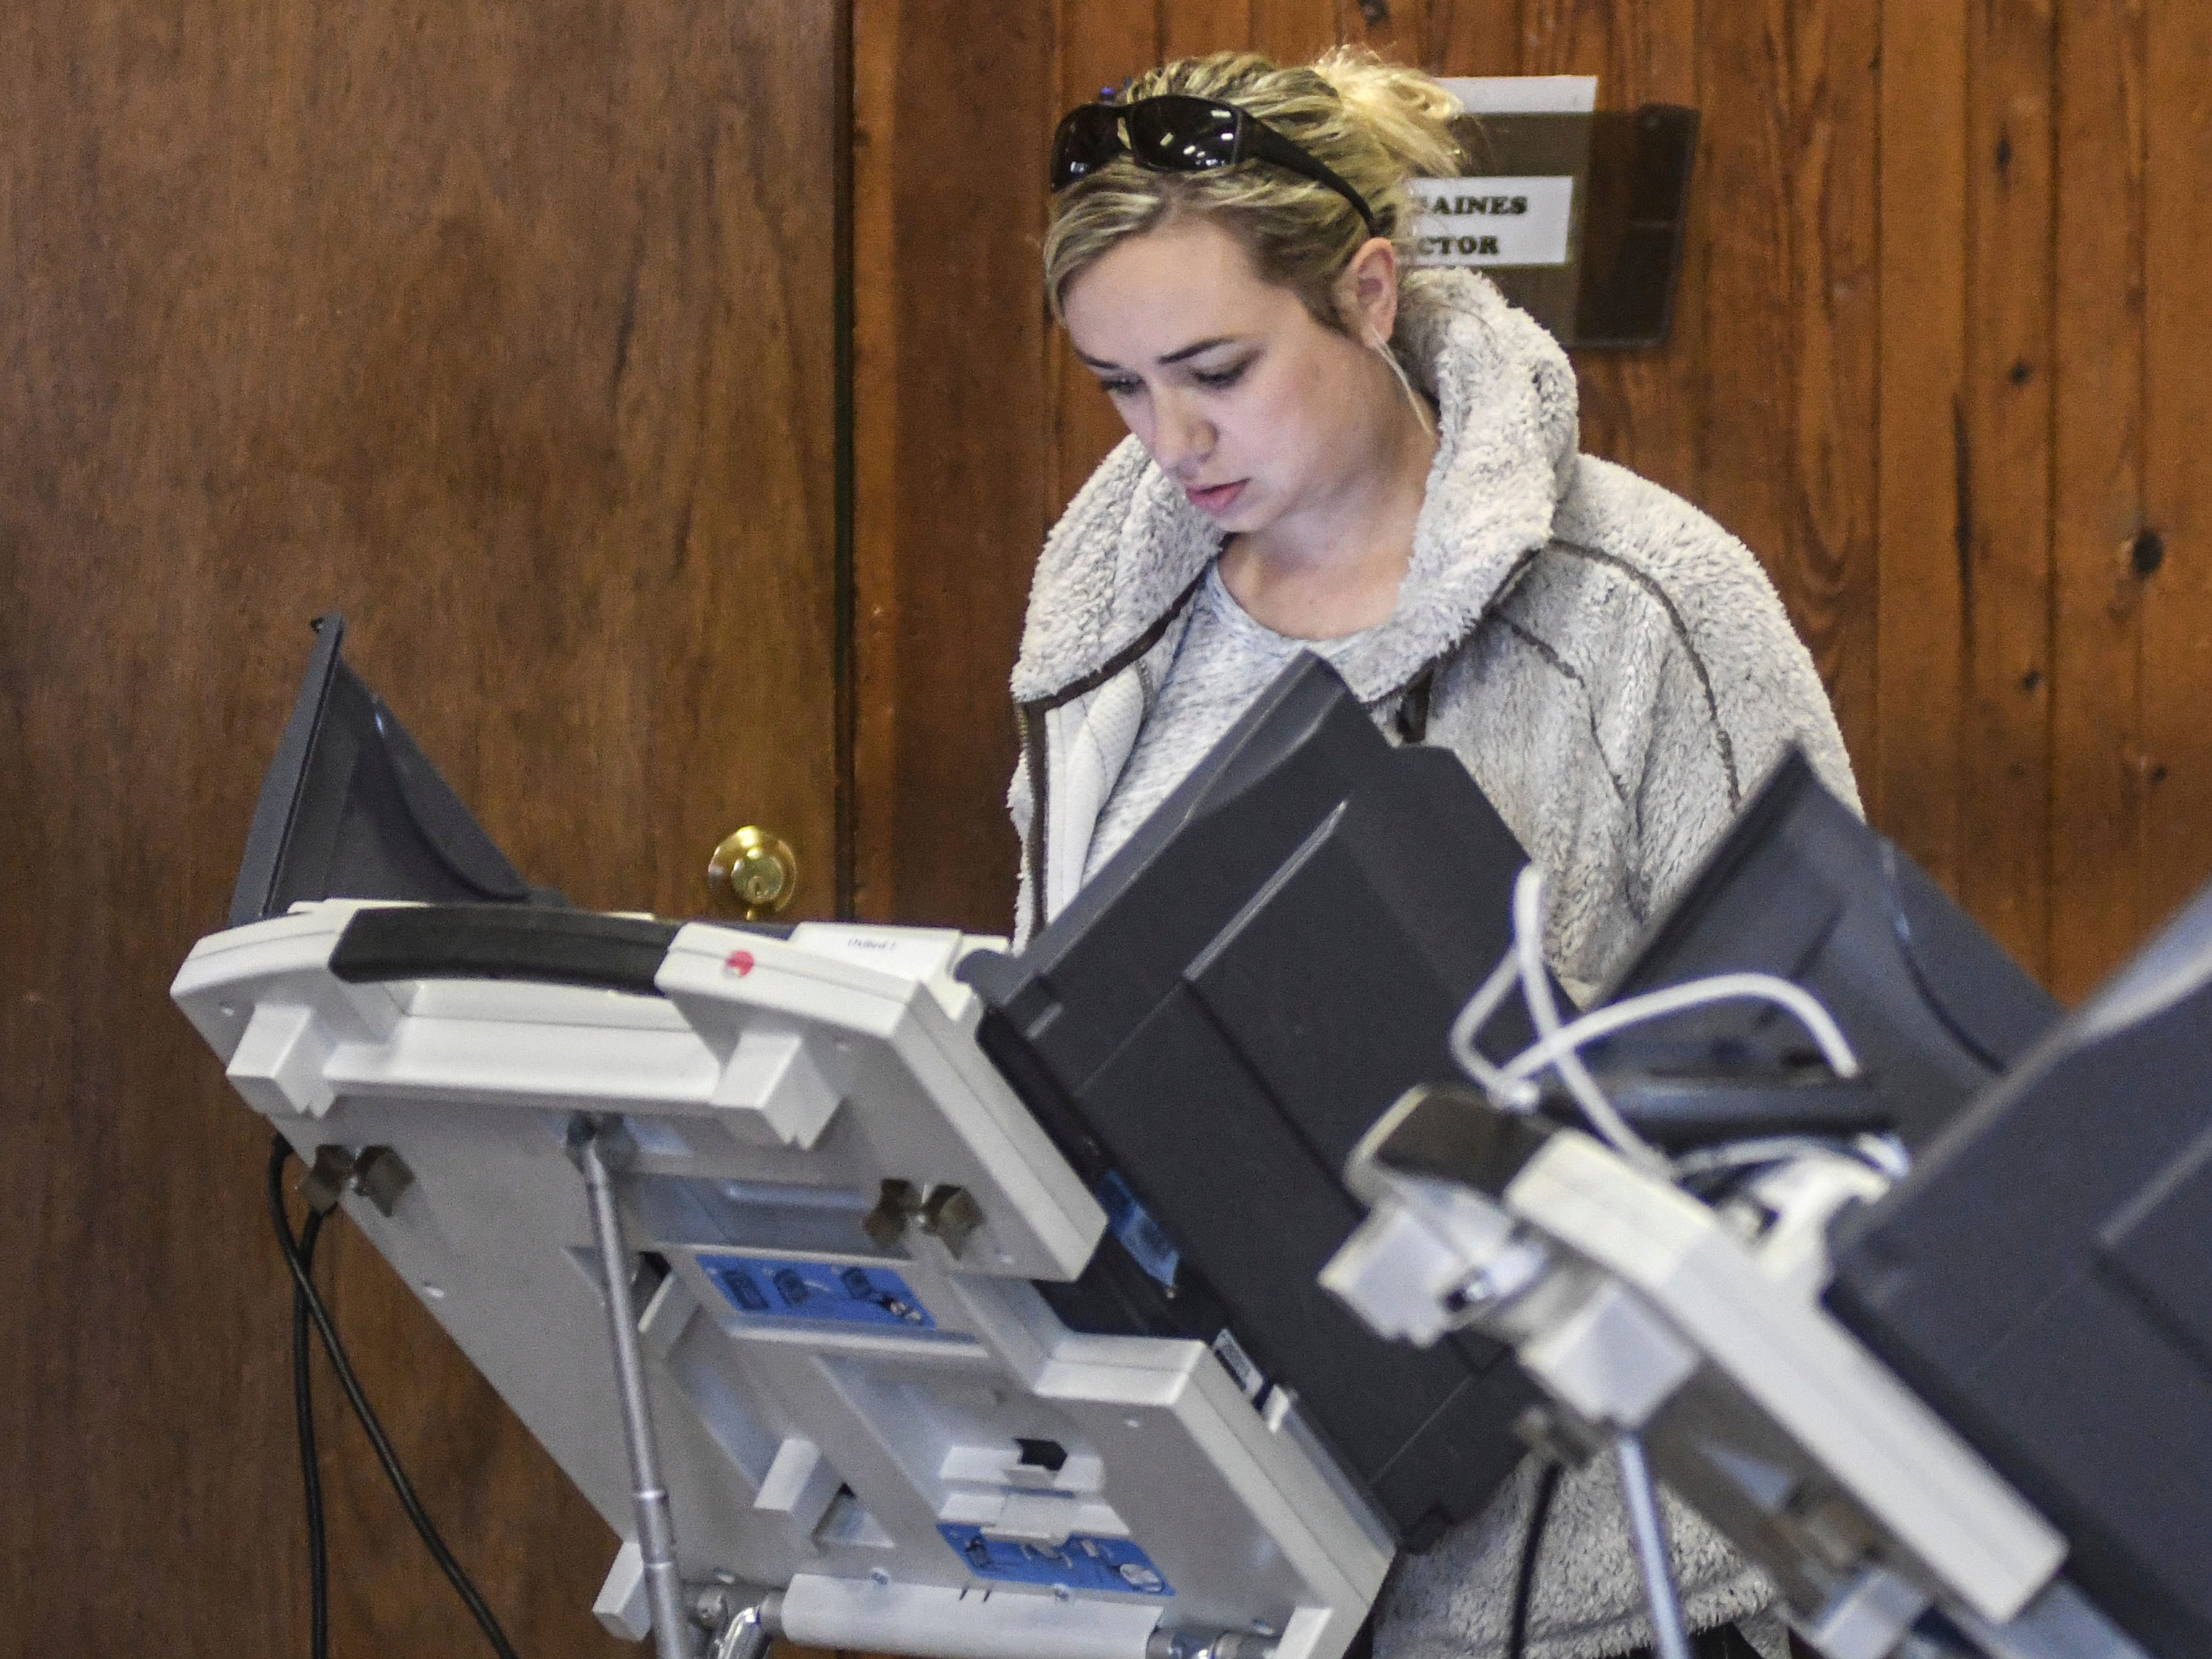 Sarah Seibert votes at the Oxford Community Center in Oxford, Miss., Tuesday, Nov. 6, 2018.